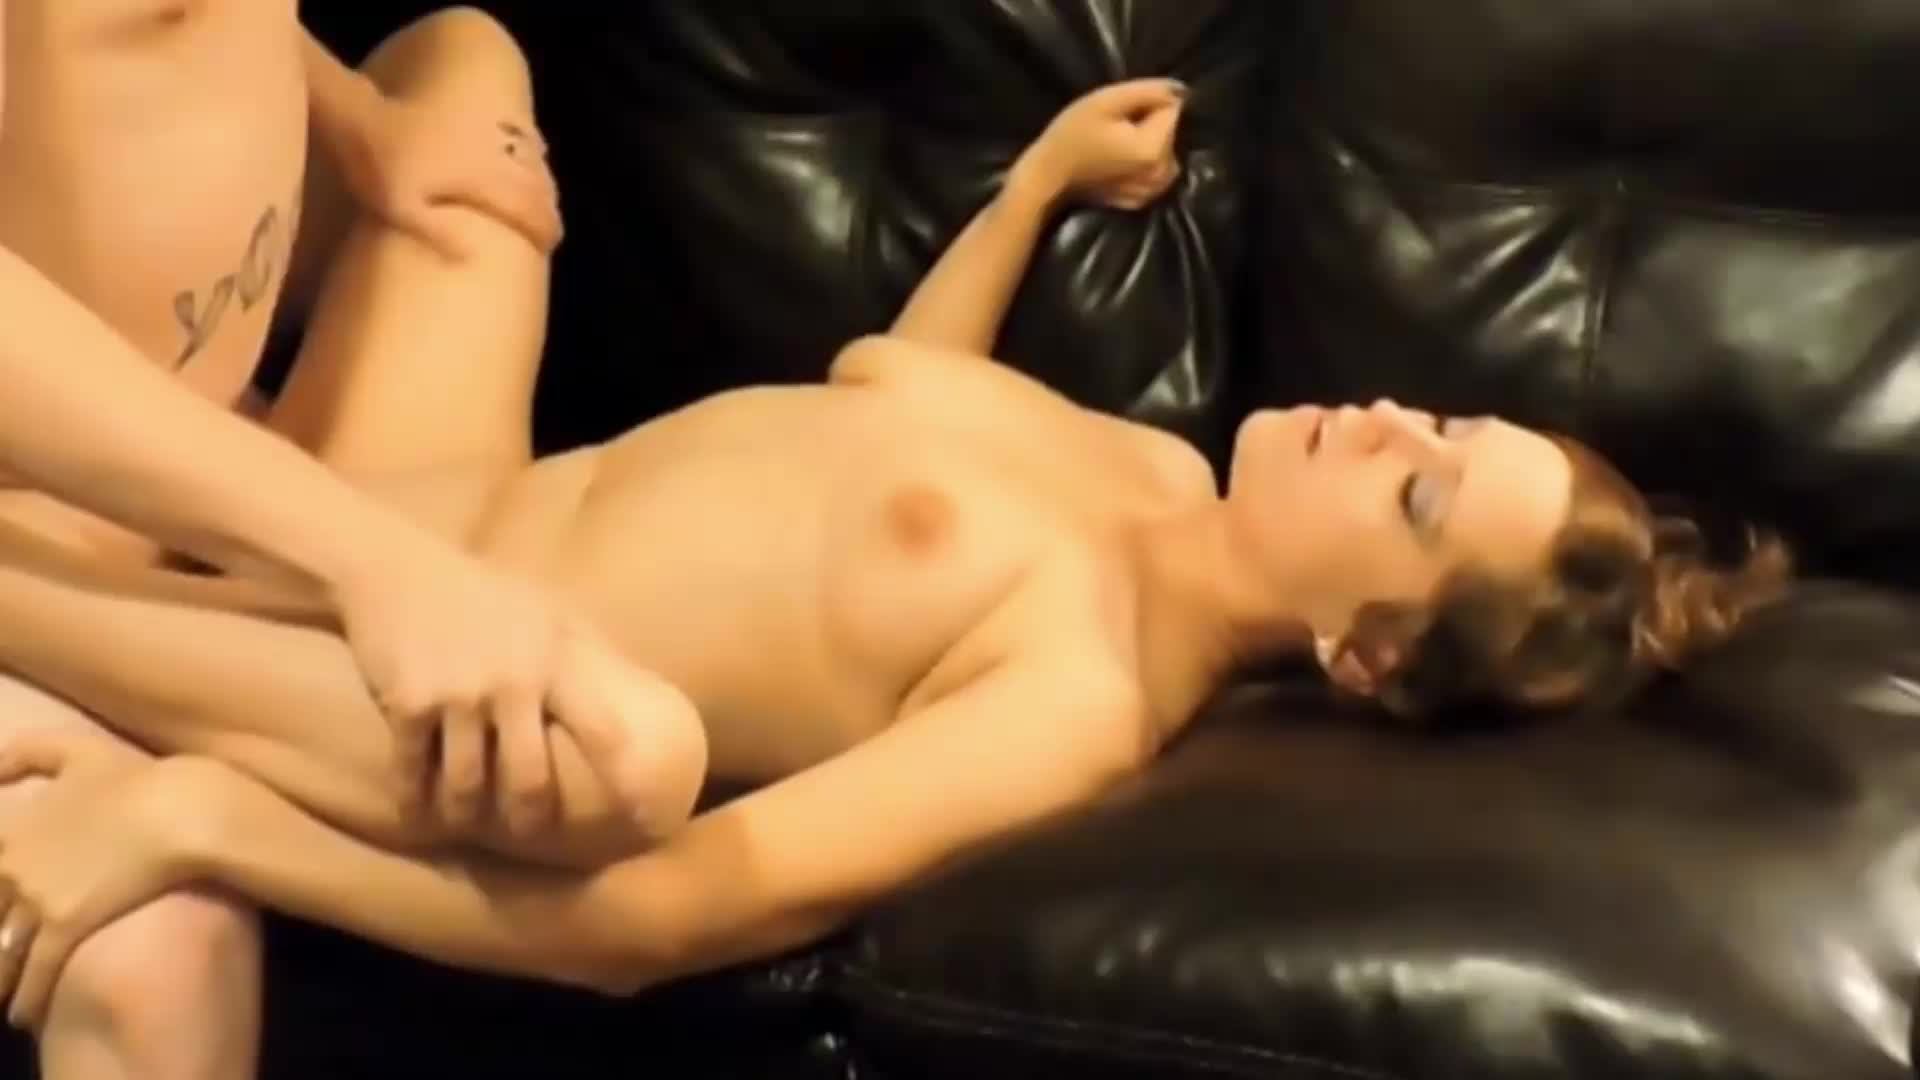 Taking a hot cumshot all over her